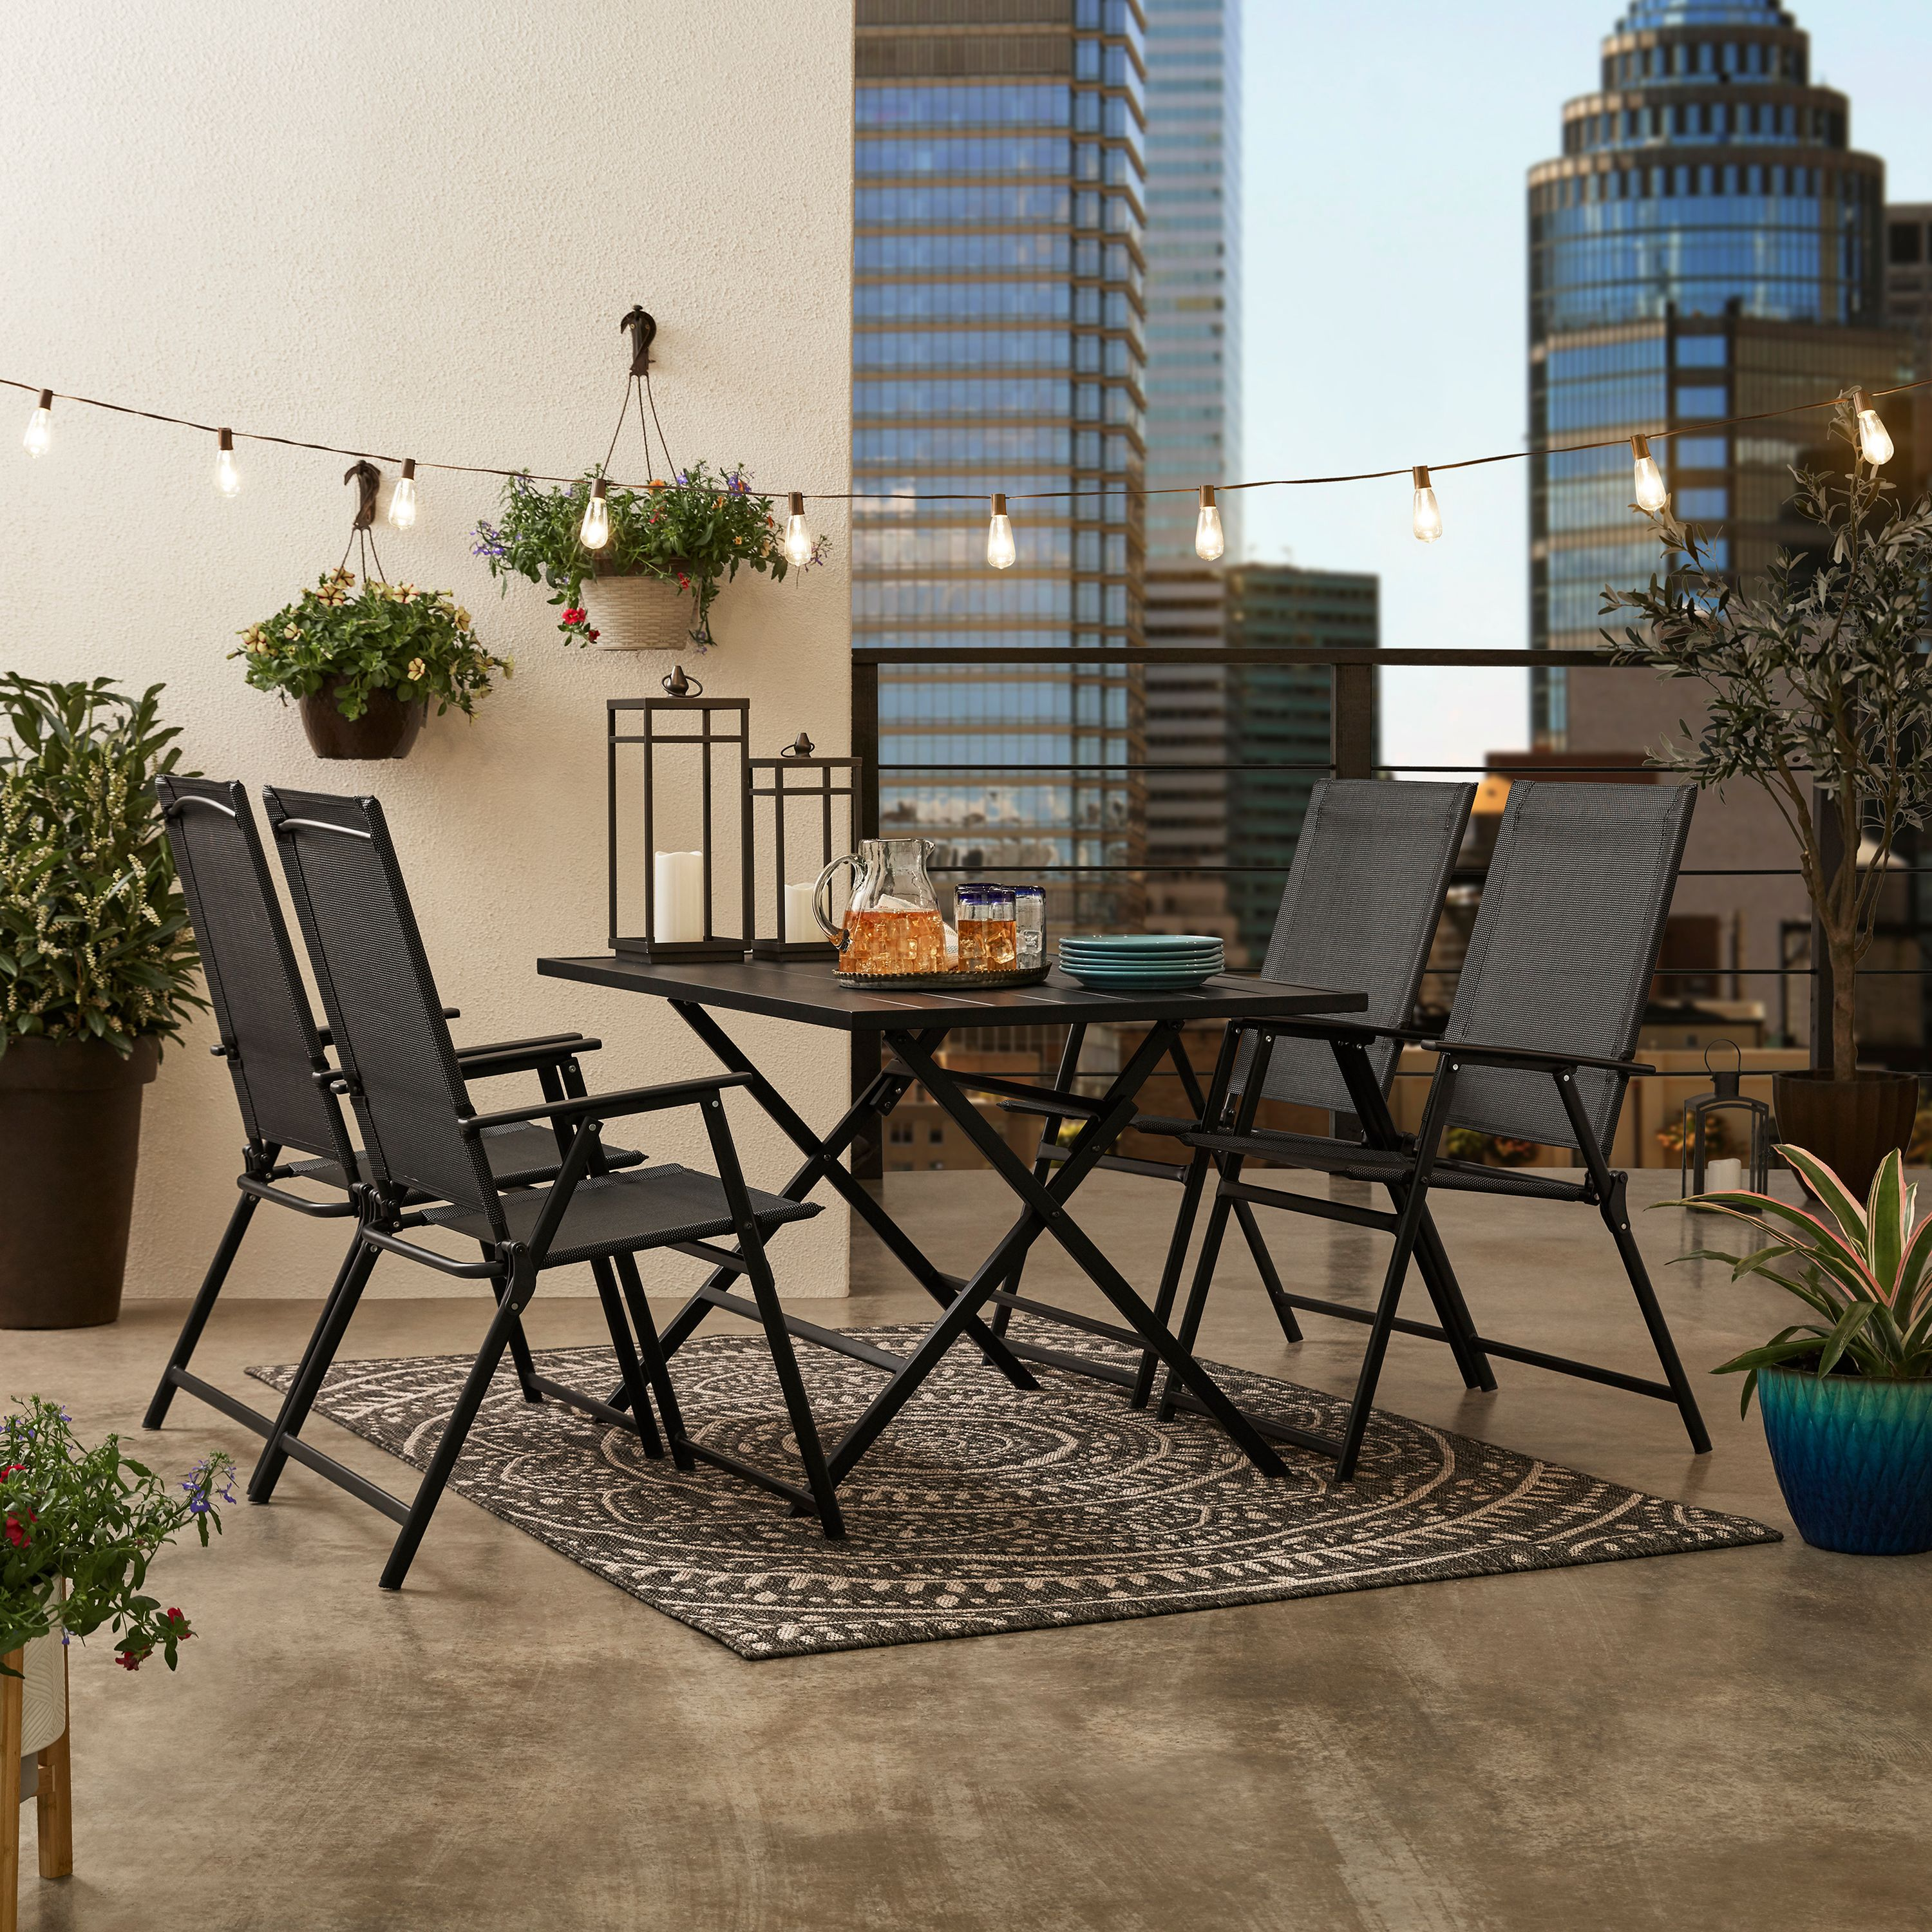 Mainstays Greyson Square Patio 5 Piece Folding Dining Set Included 4 Chairs And 1 Table Black Walmart Com Walmart Com